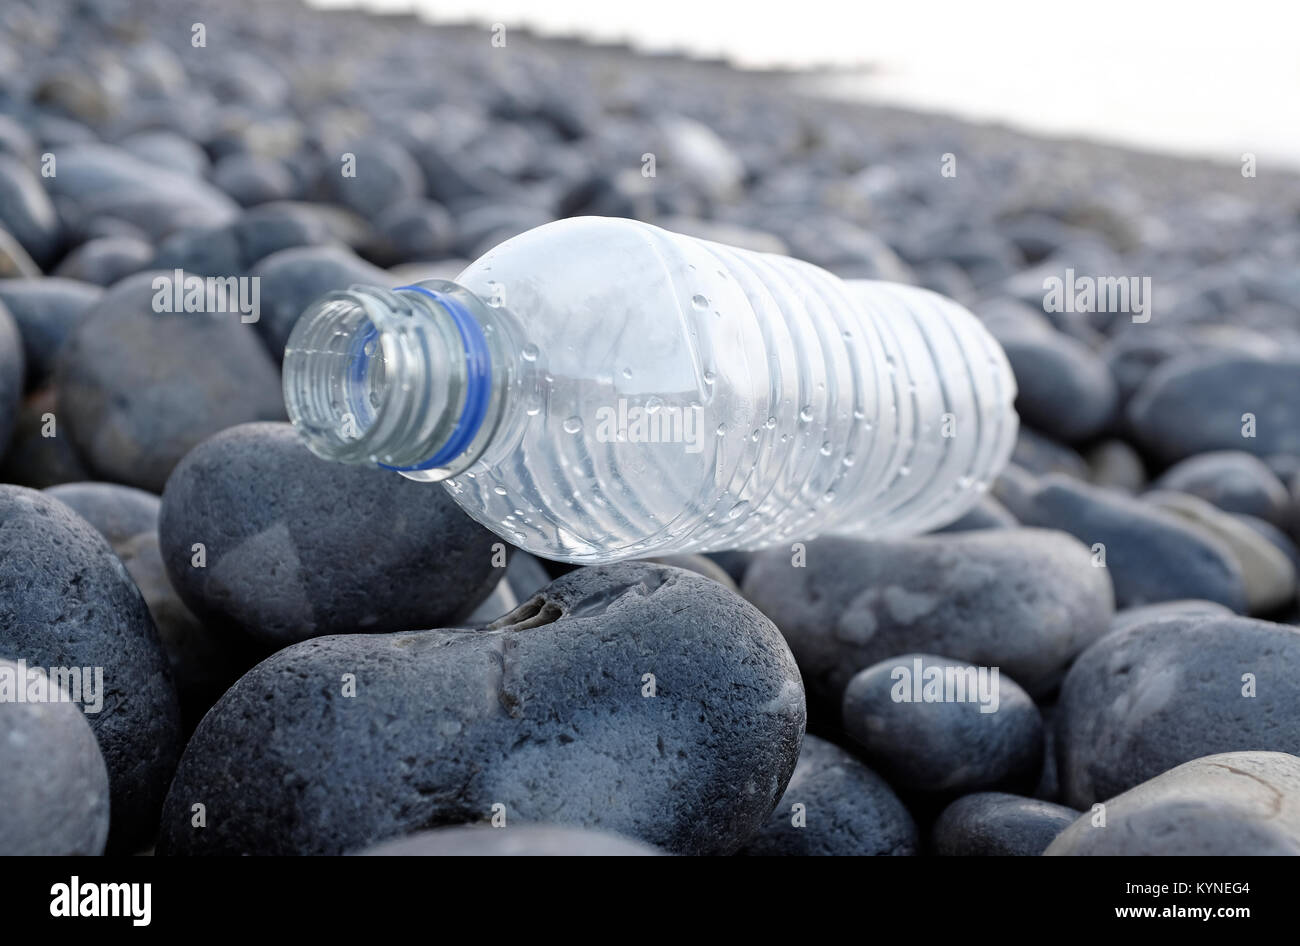 plastic water bottle washed up on shingle beach, sheringham, north norfolk, england - Stock Image